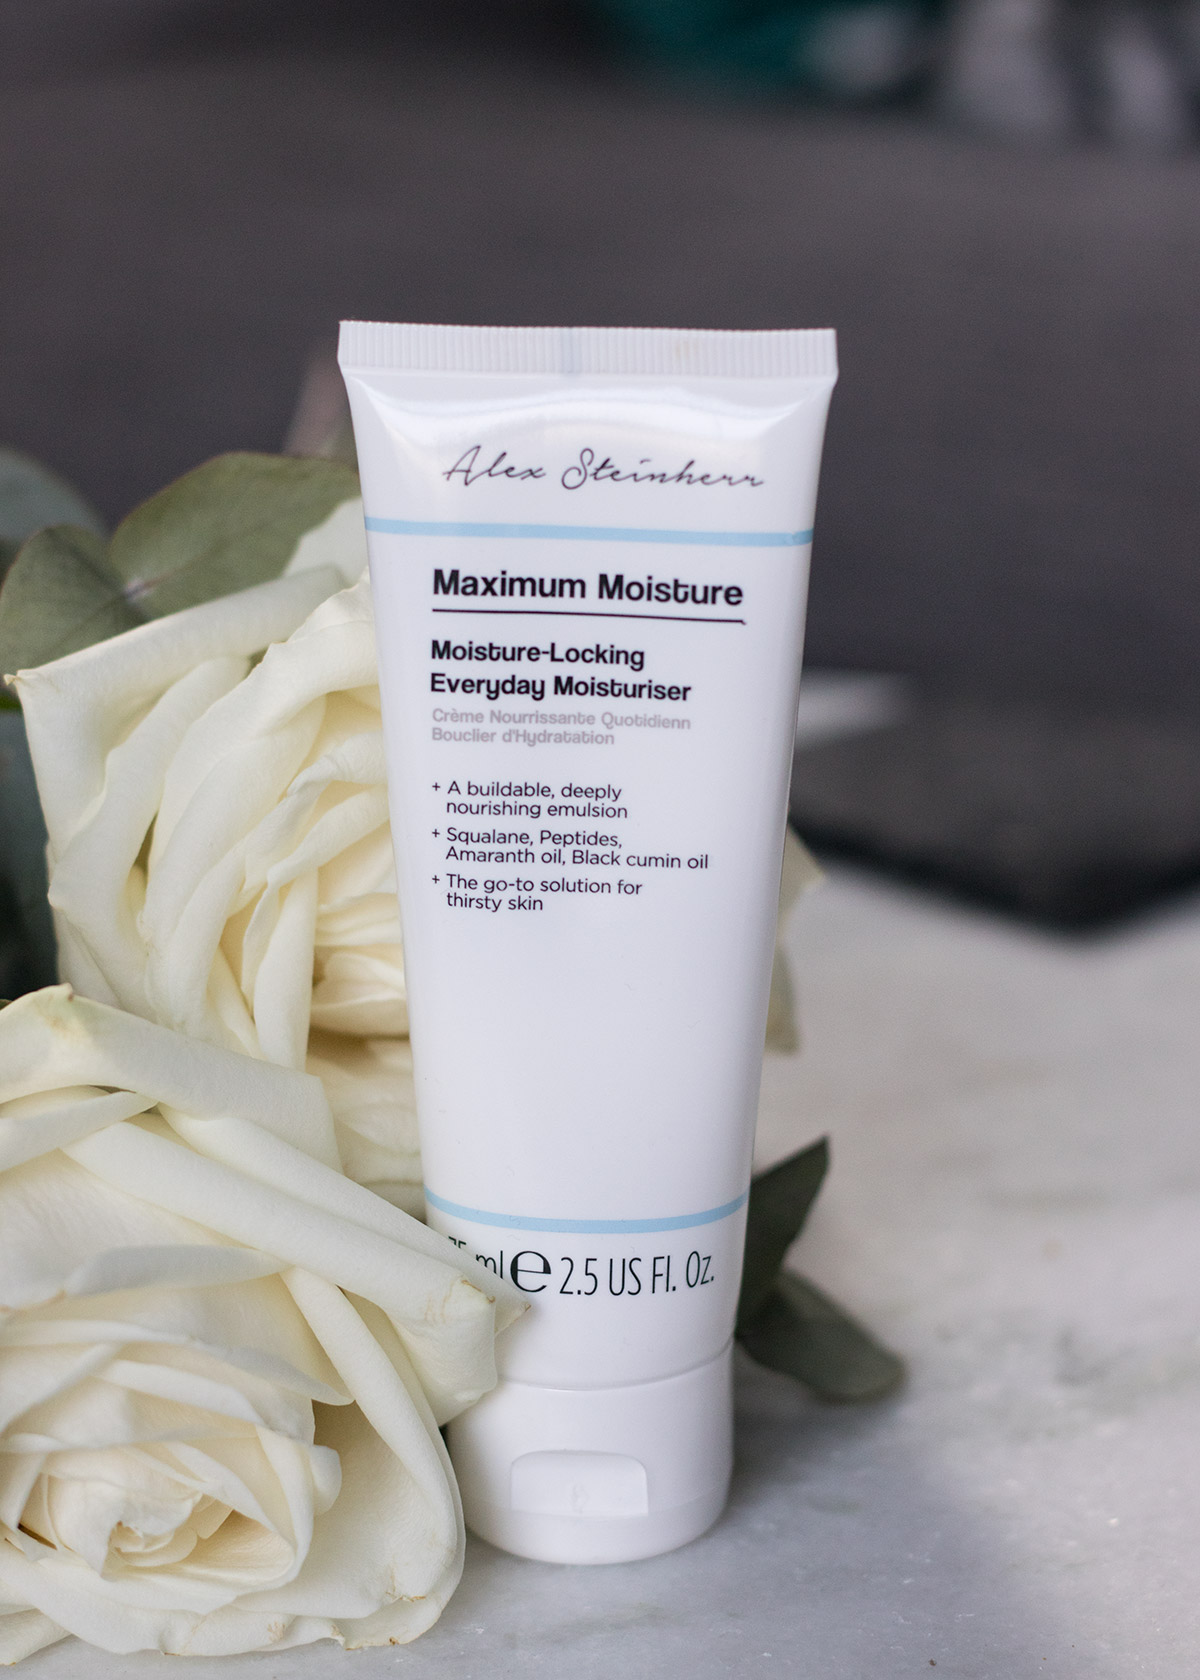 Alex-Steinherr-Primark-Maximum-Moisture-Moisture-Locking-Everyday-Moisturiser-Review